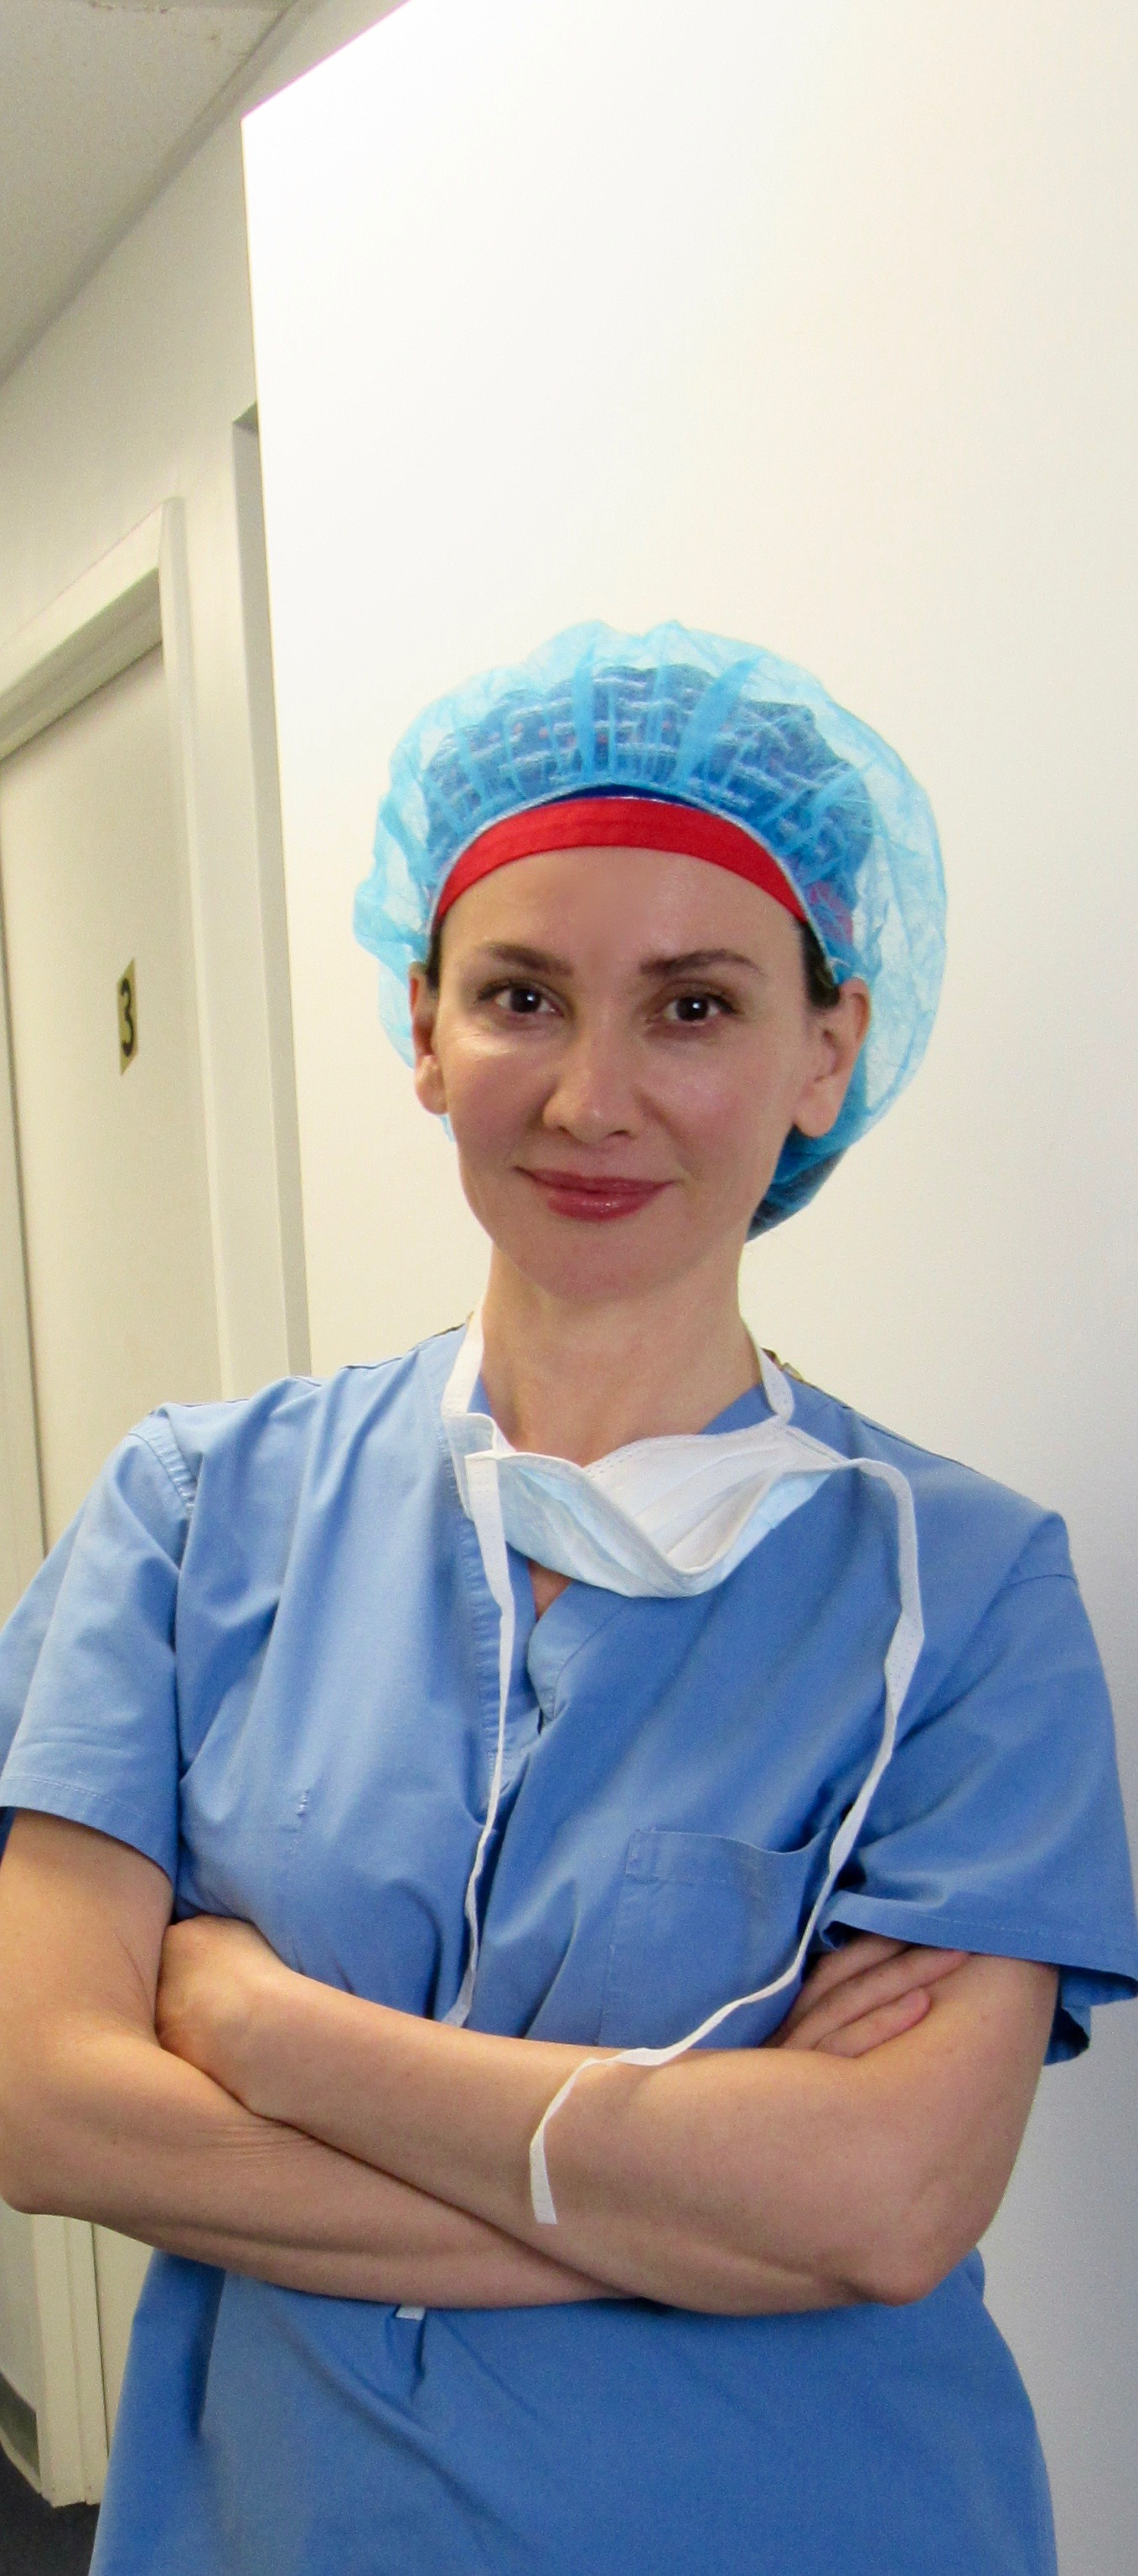 Shahnoz Rustamova   Medical Advisor - Weill Cornell  Dr. Rustamova has over two decades of surgical experience. As a board certified OBGYN surgeon, she knows her way around a cervix and uterus. Running one of the busiest practices in NYC has put her in a perfect position to communicate patient need to our team. IAOTP woman of the year in 2018.